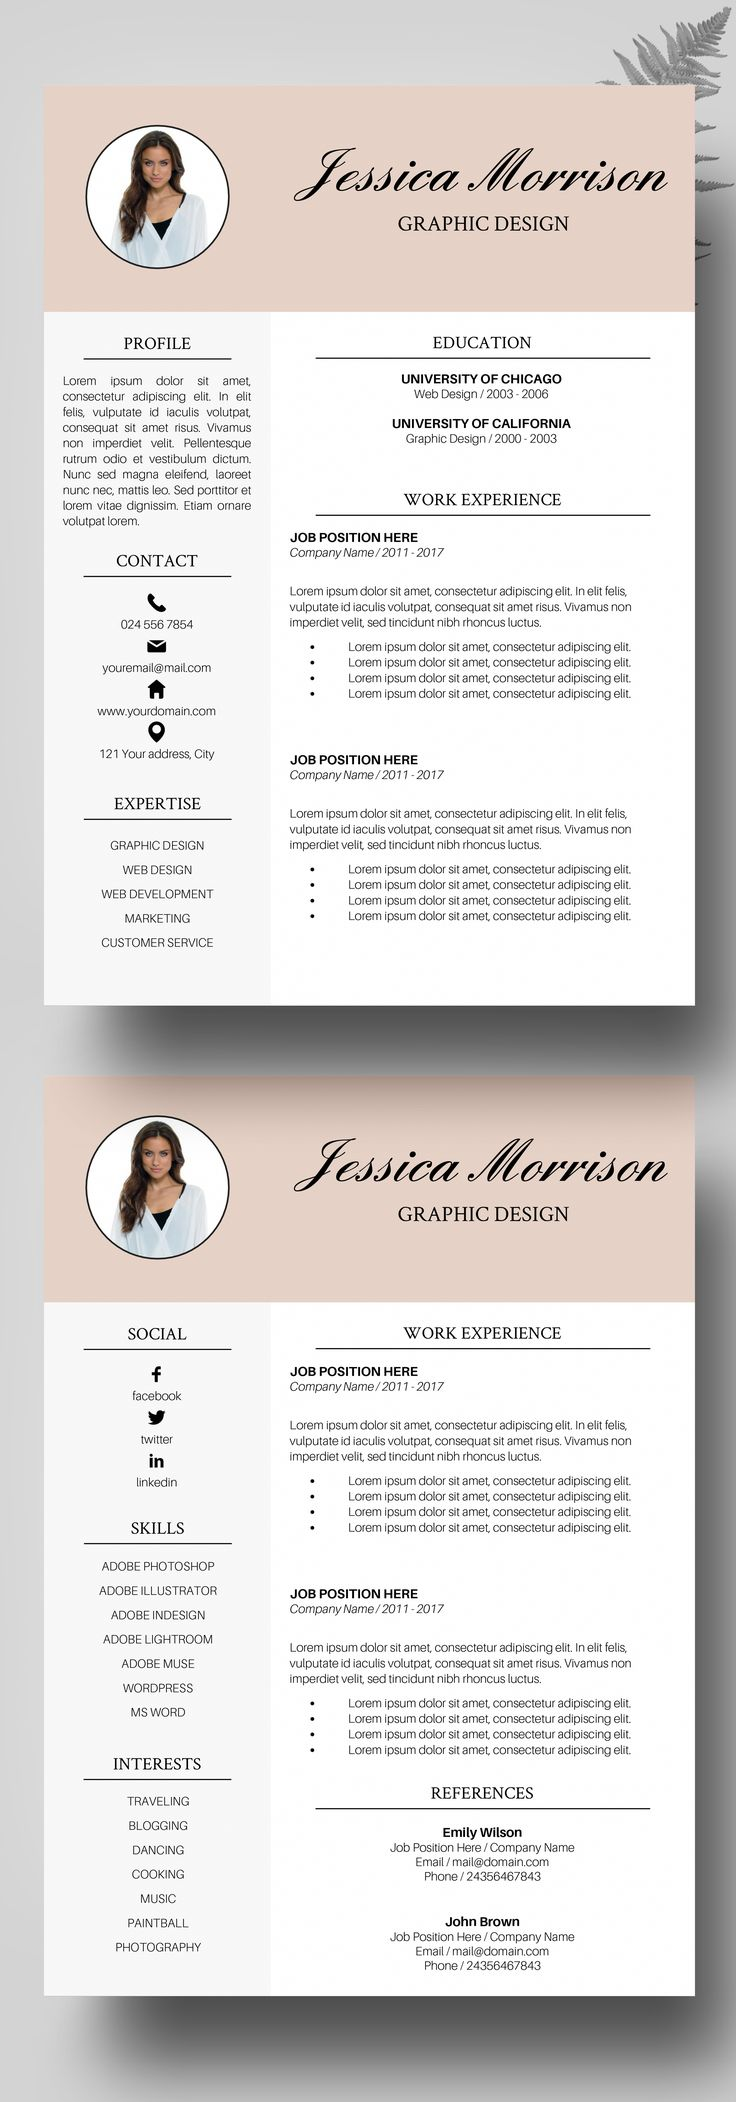 resume template cv template for ms word resume modern professional resume creative - Professional Resume Template Free Download